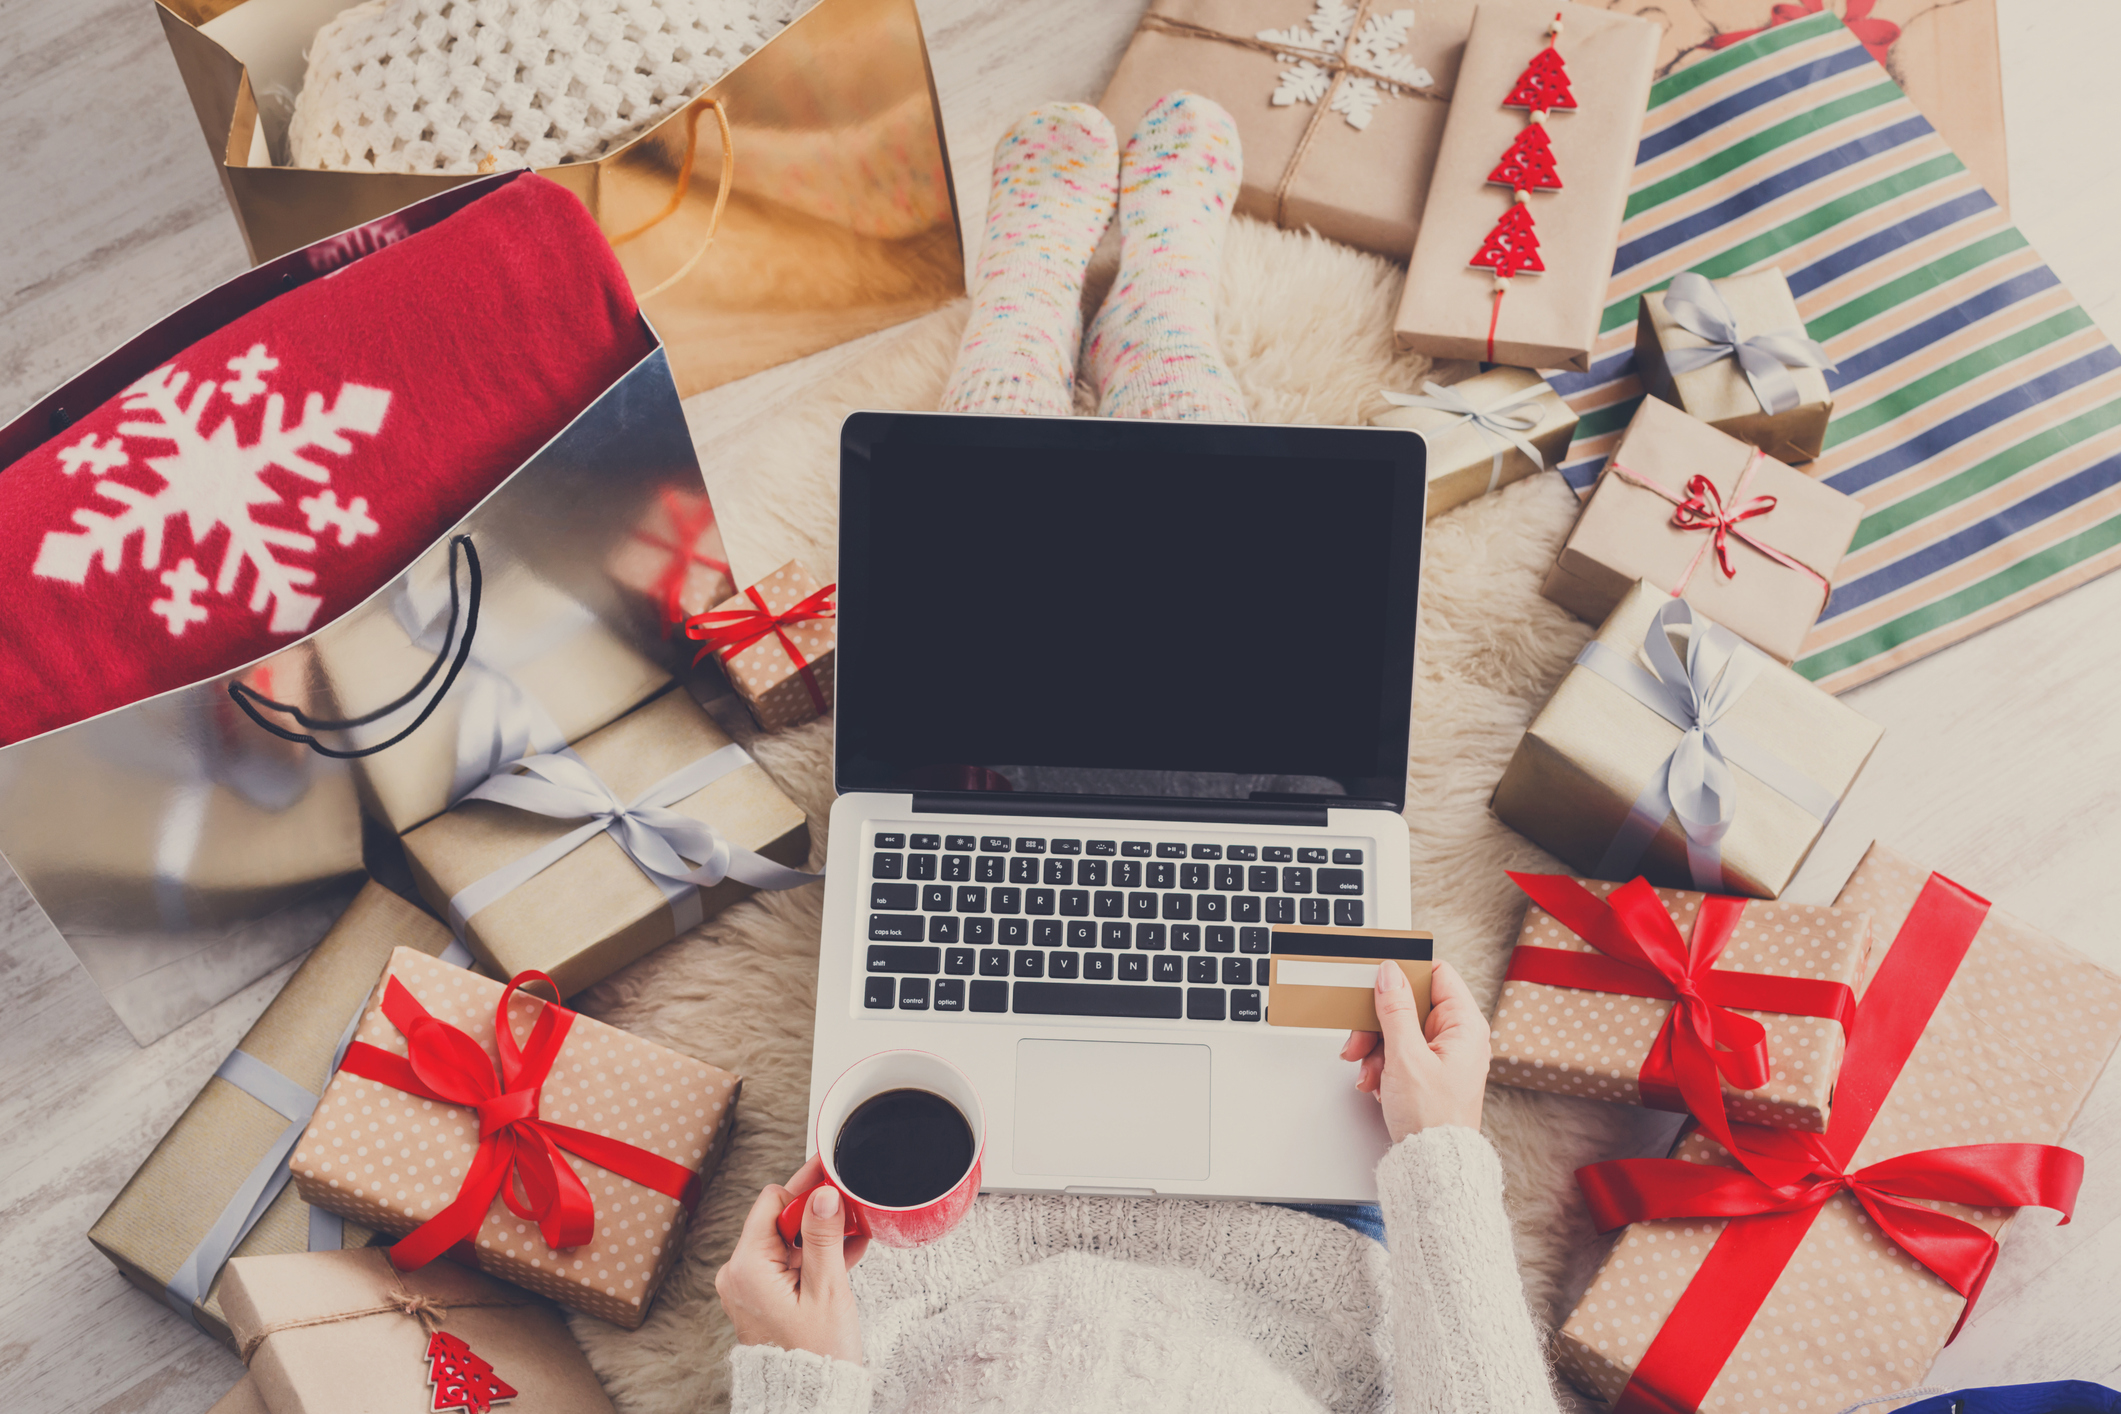 Tis the season for a spike in identity theft—12 tips to stay safe during the holidays